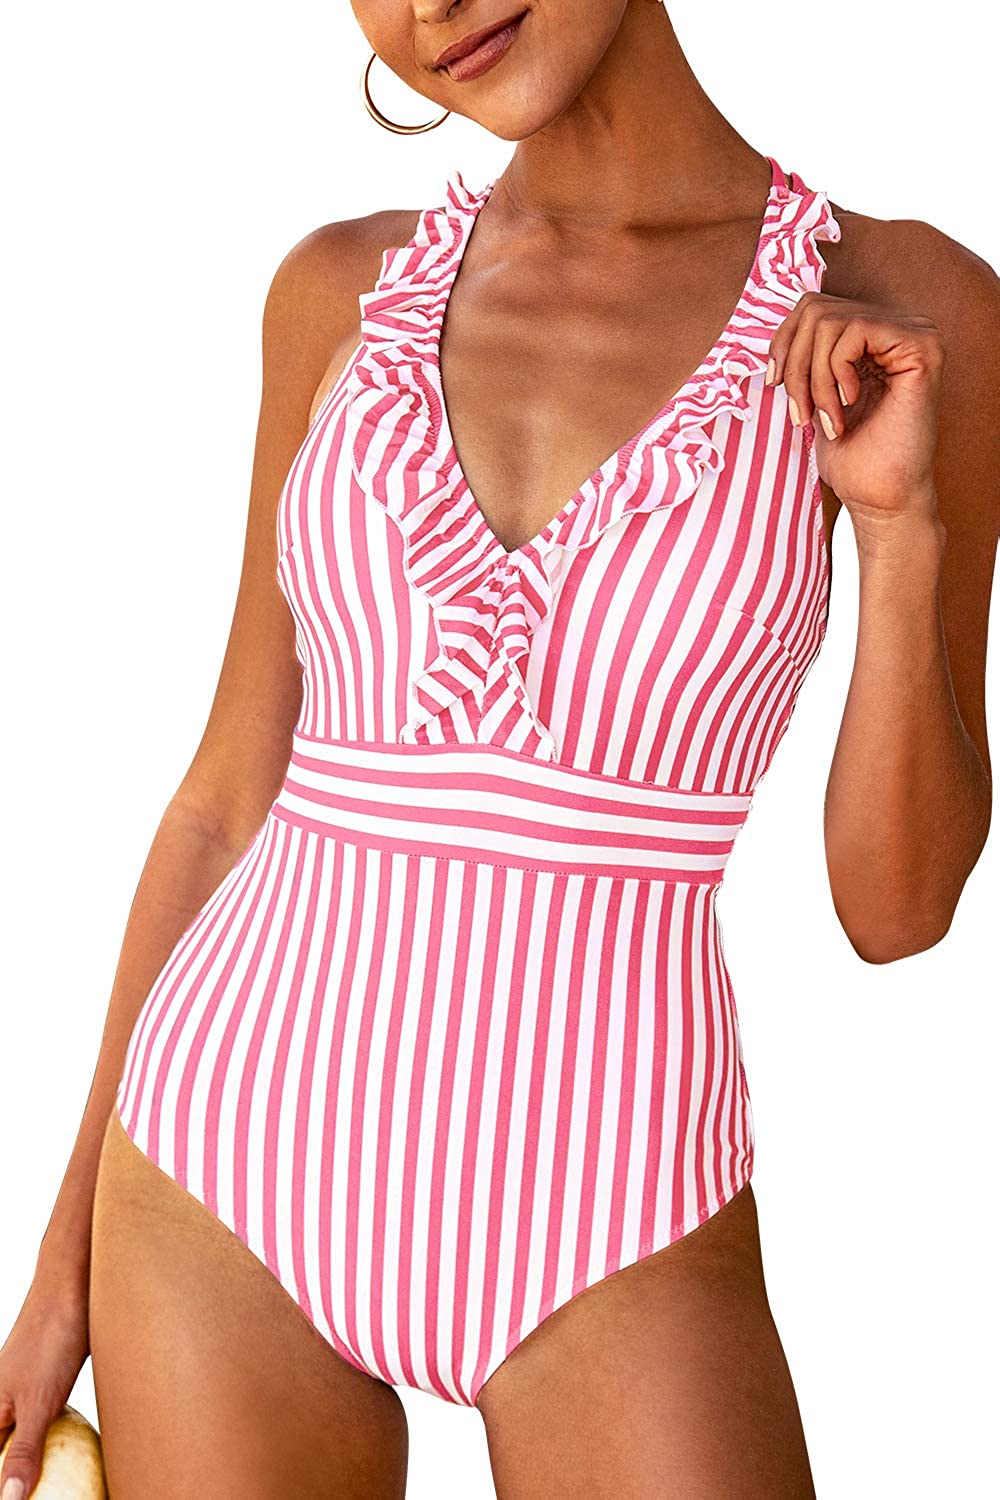 1960s Style Clothing & 60s Fashion CUPSHE Womens V Neck One Piece Swimsuit Ruffled Back Cross Swimwear $29.99 AT vintagedancer.com